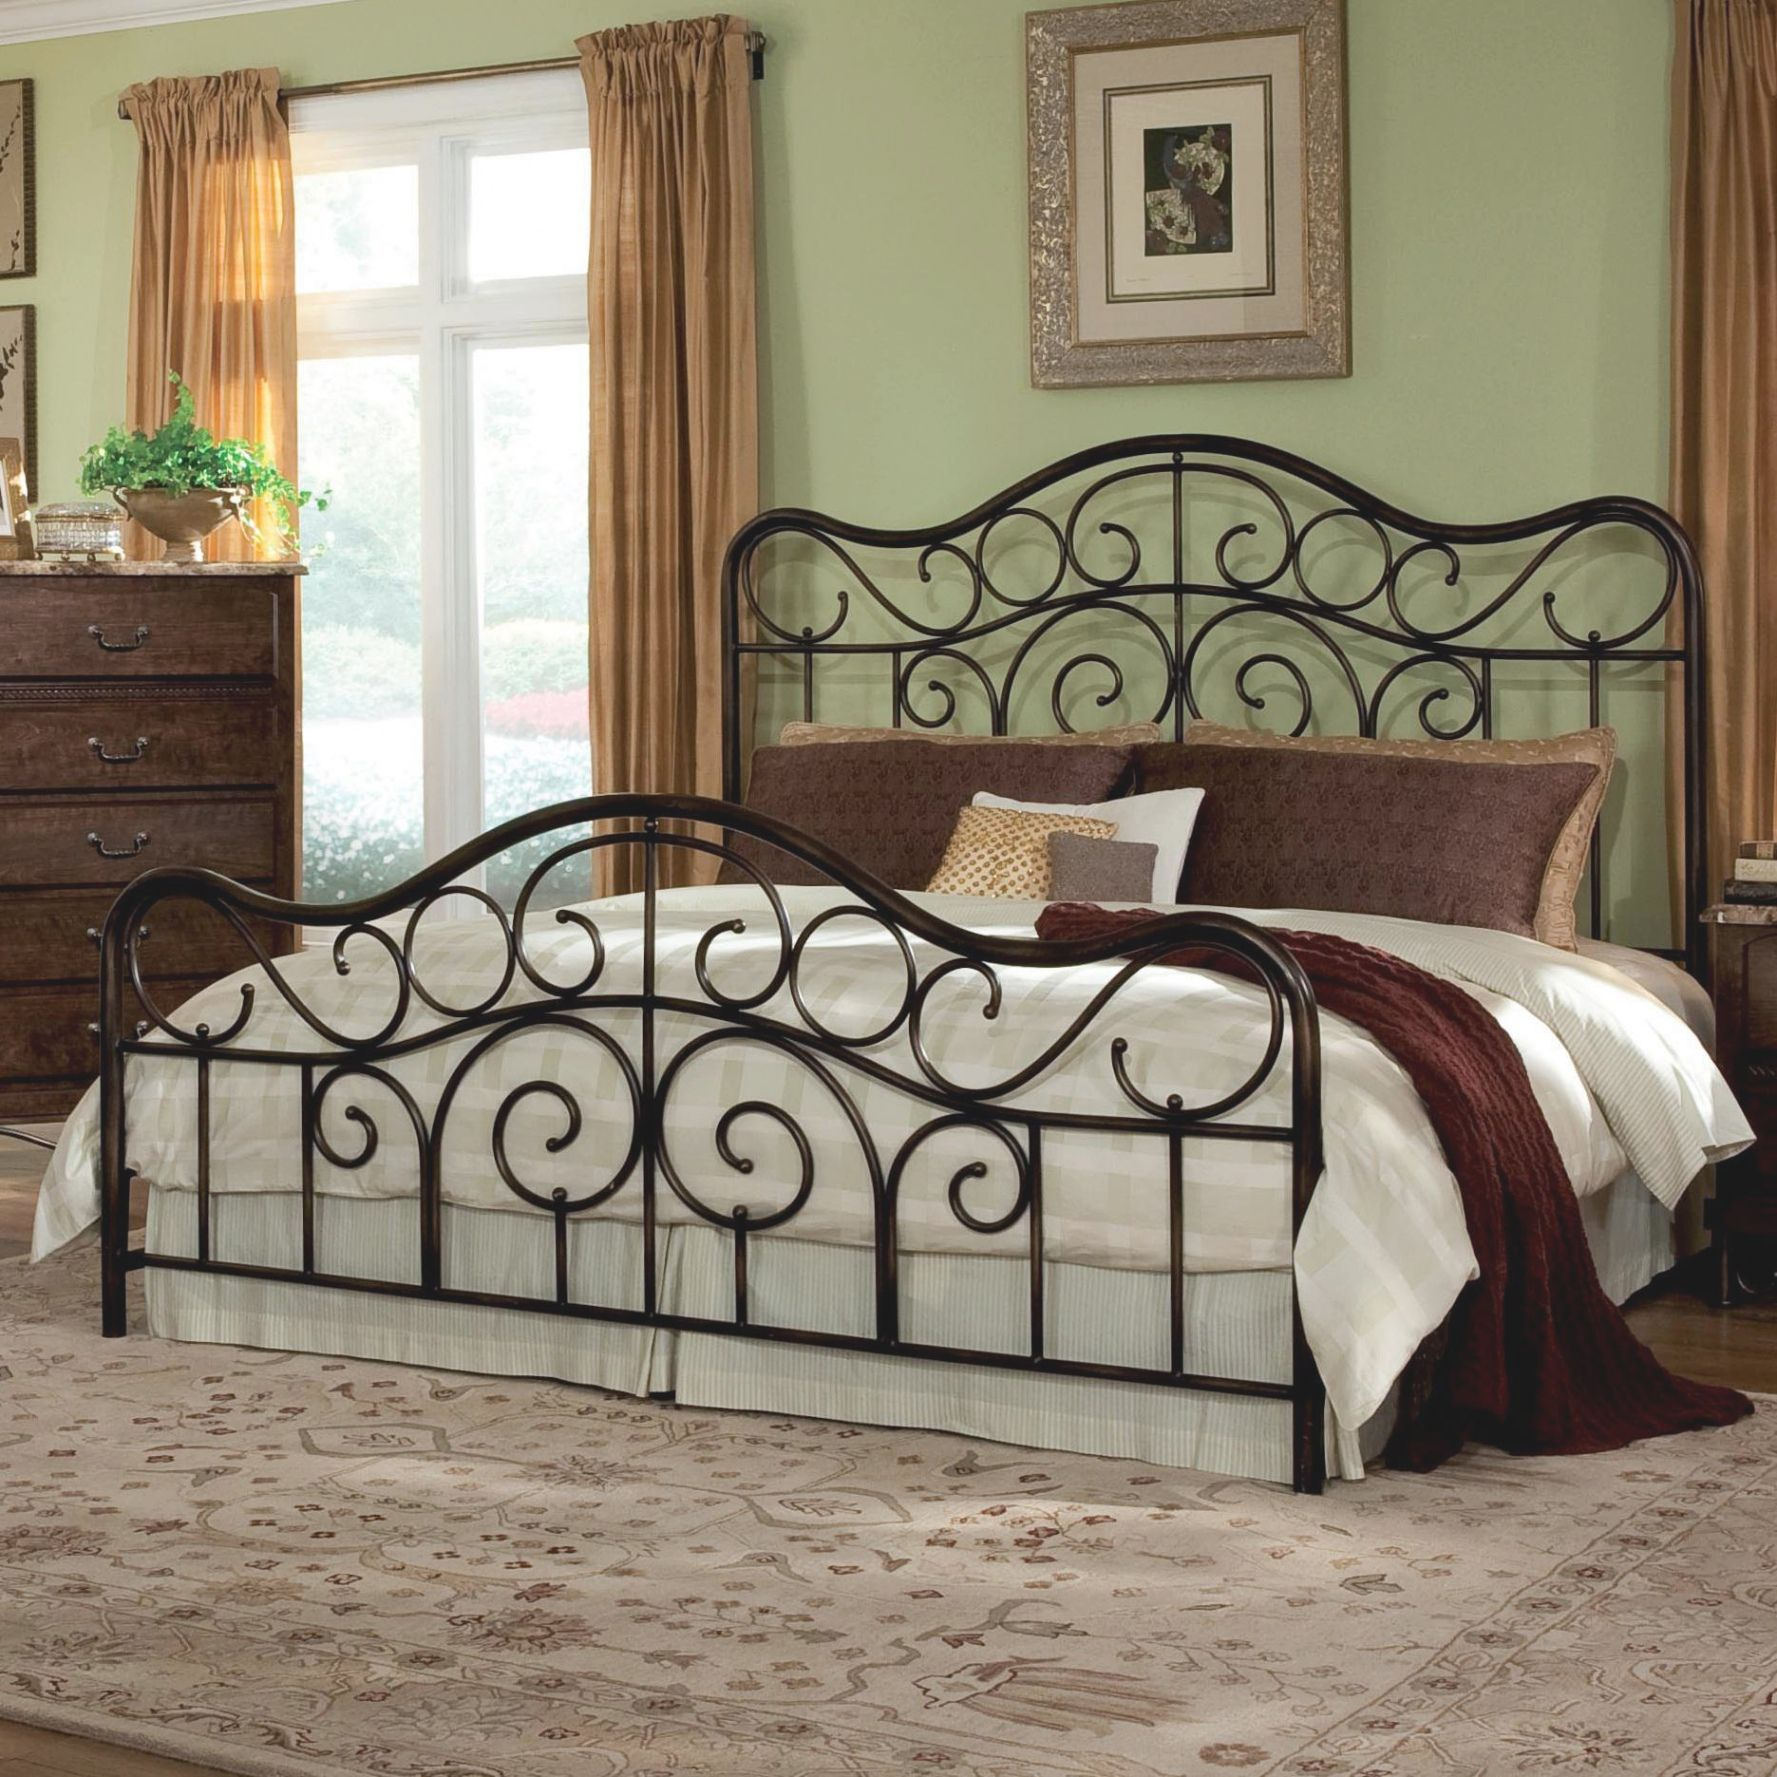 King Size Metal Headboard And Footboard Check more at http://www ...